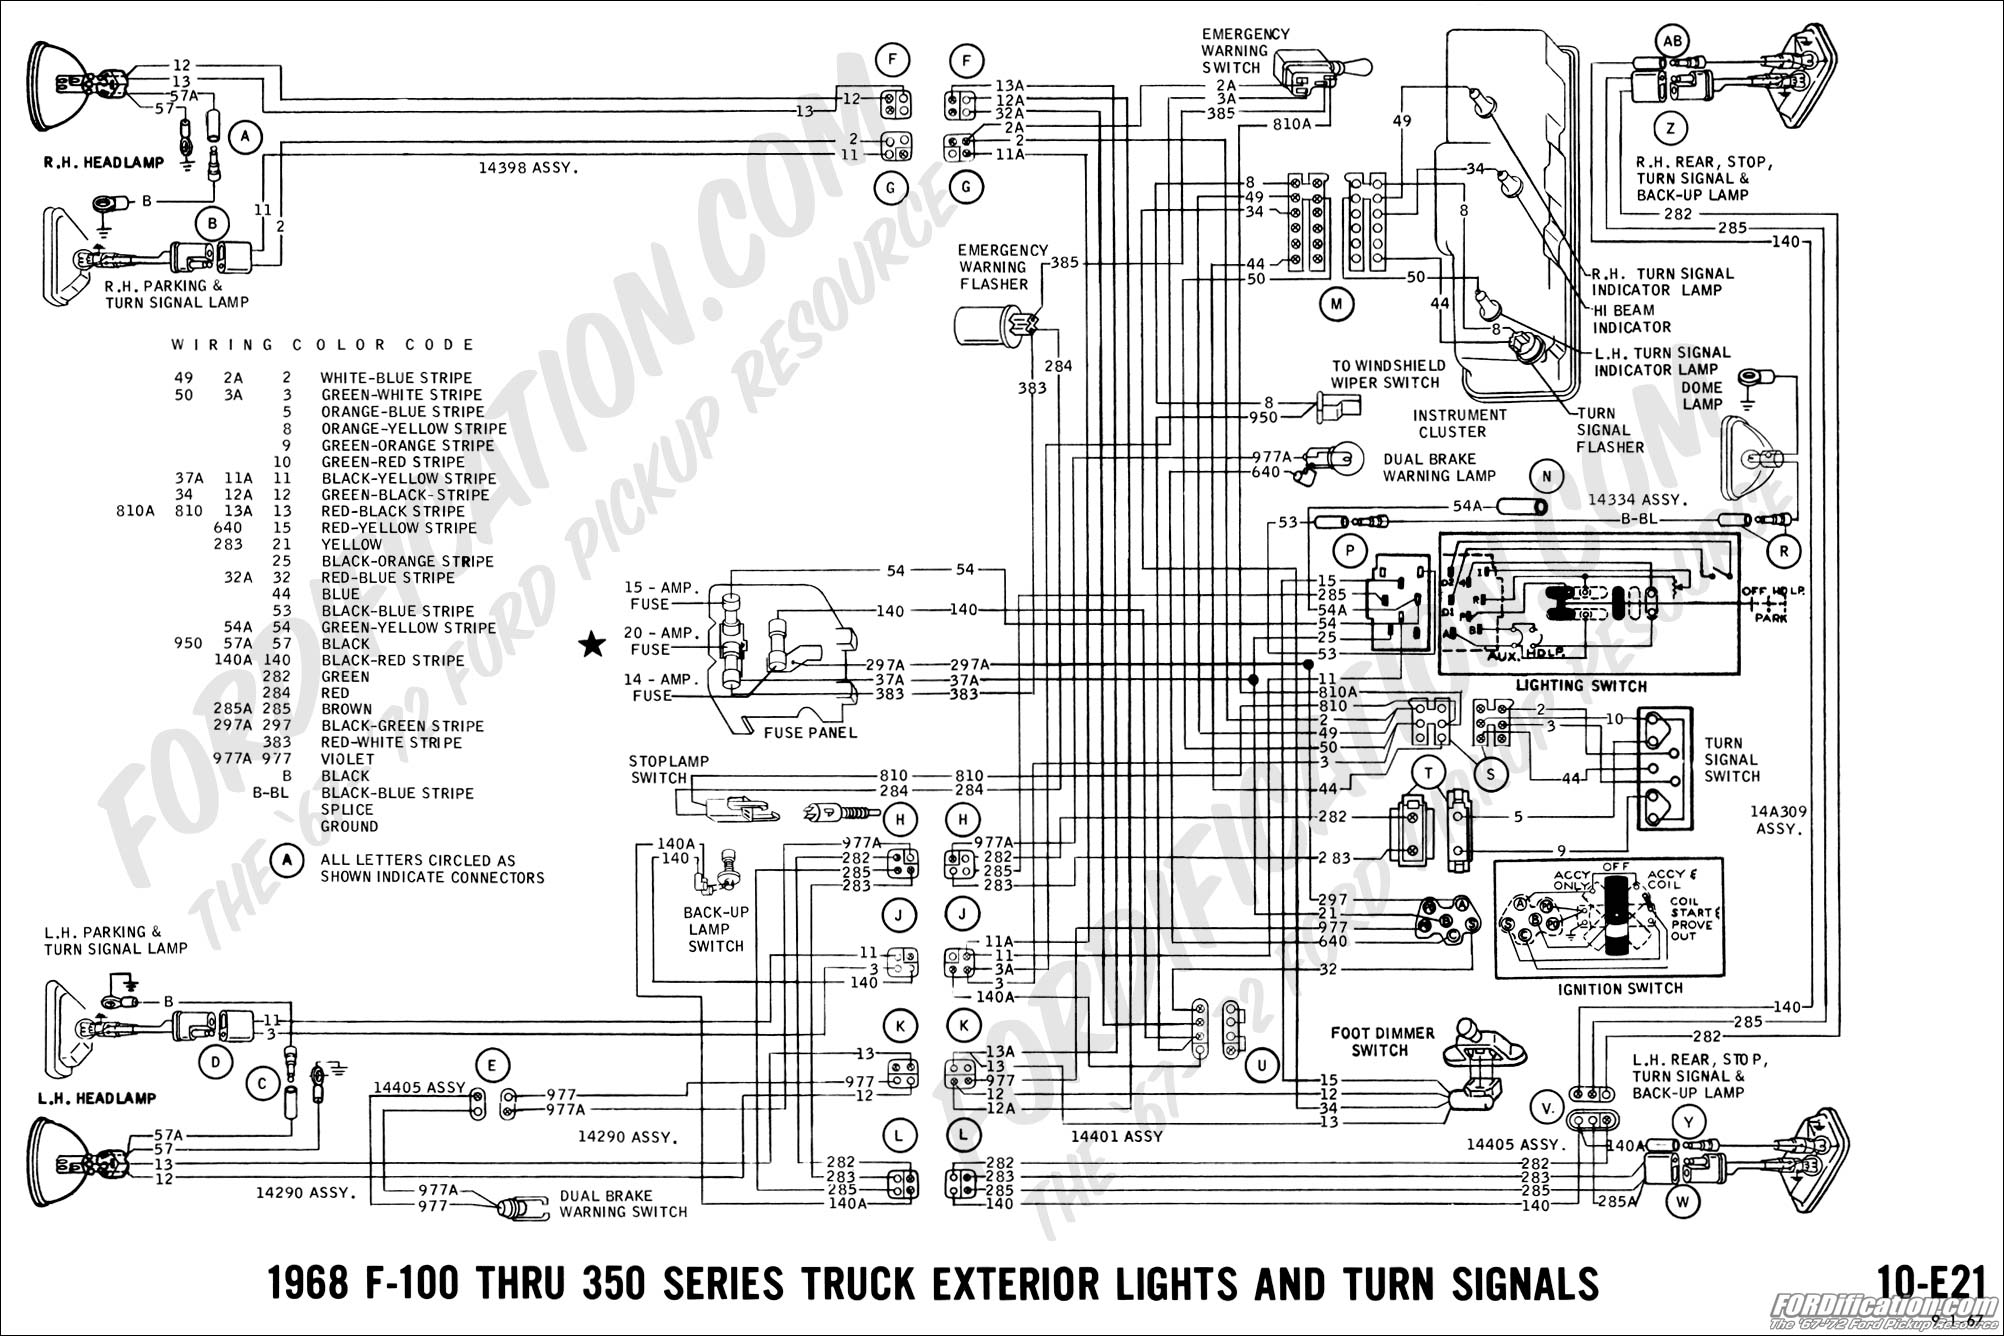 Awe Inspiring Ford Pinto Wiring Harness Basic Electronics Wiring Diagram Wiring Cloud Hisonepsysticxongrecoveryedborg